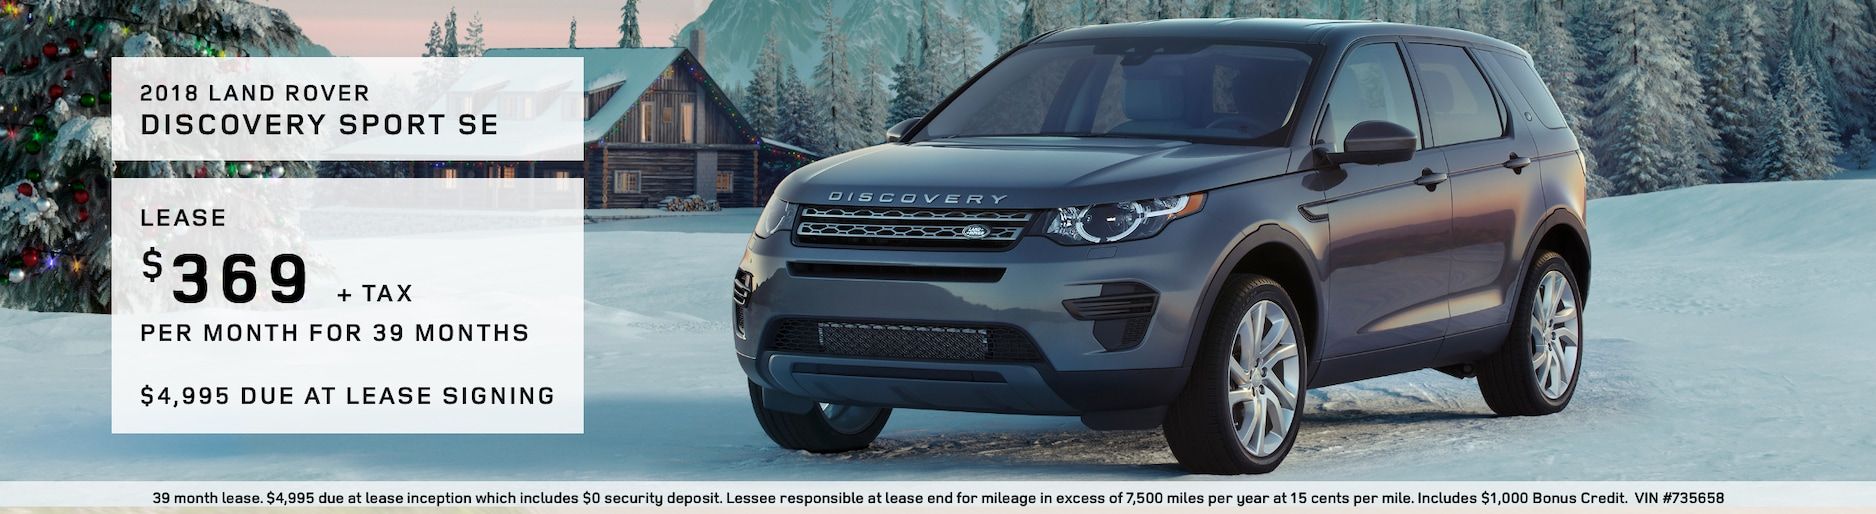 Land Rover Of Livermore CA New Land Rover Used Car Dealer - Range rover repair los angeles